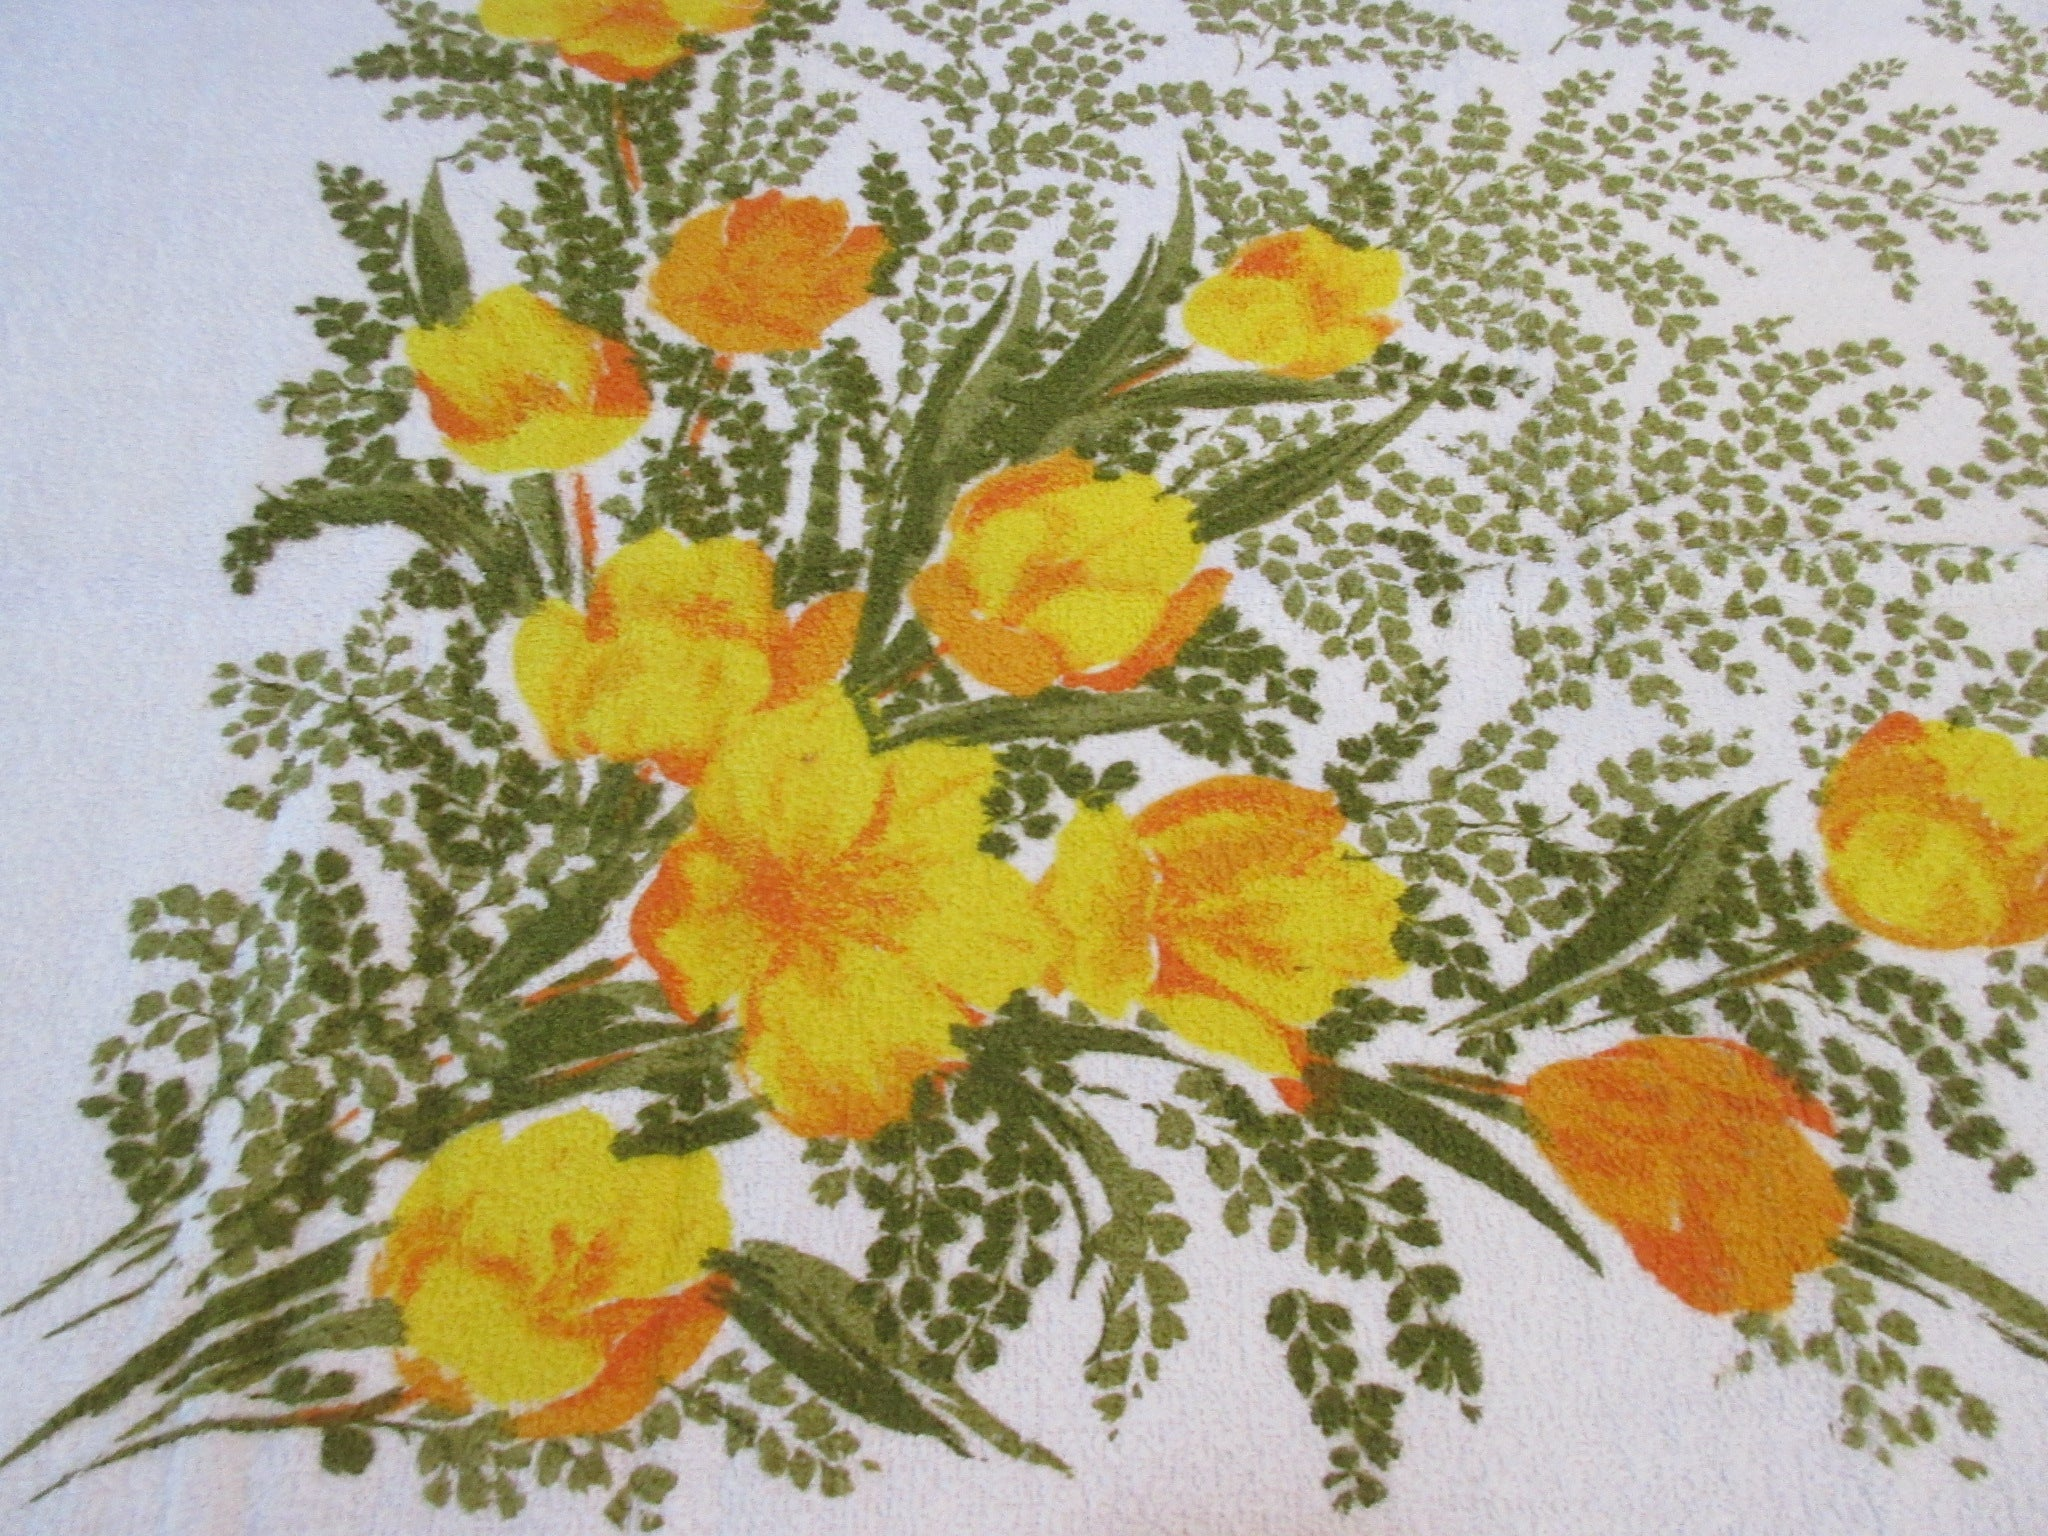 CHP TERRY Yellow Olive Tulips Large MWT Floral Vintage Printed Tablecloth (92 X 51)